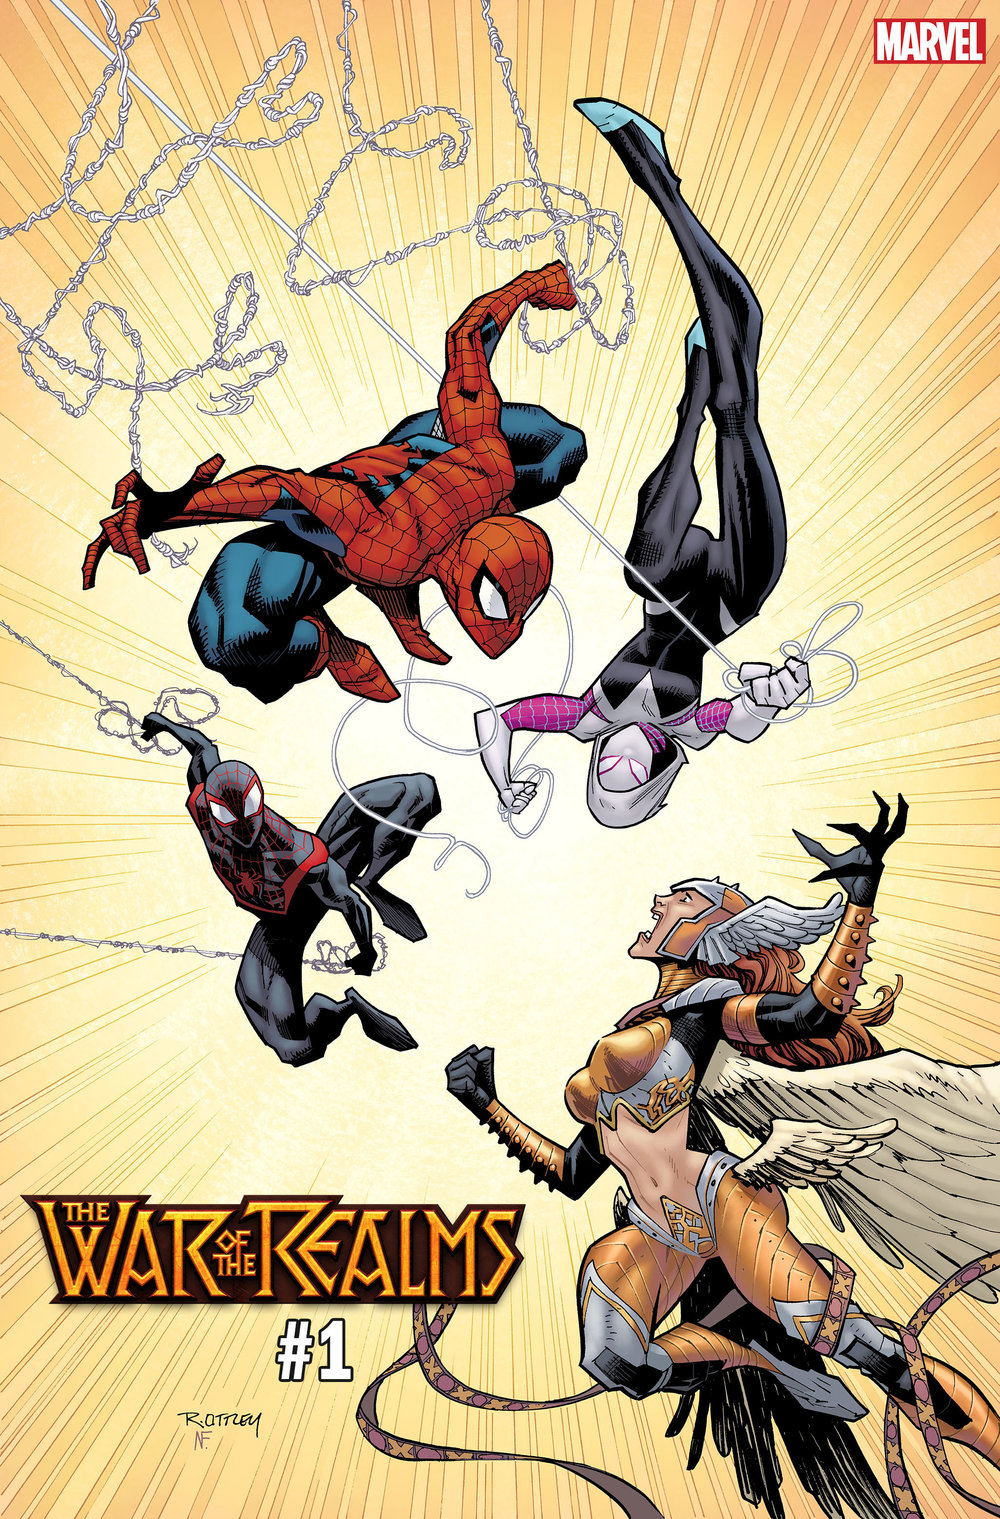 """War of the Realms #1"" variant"